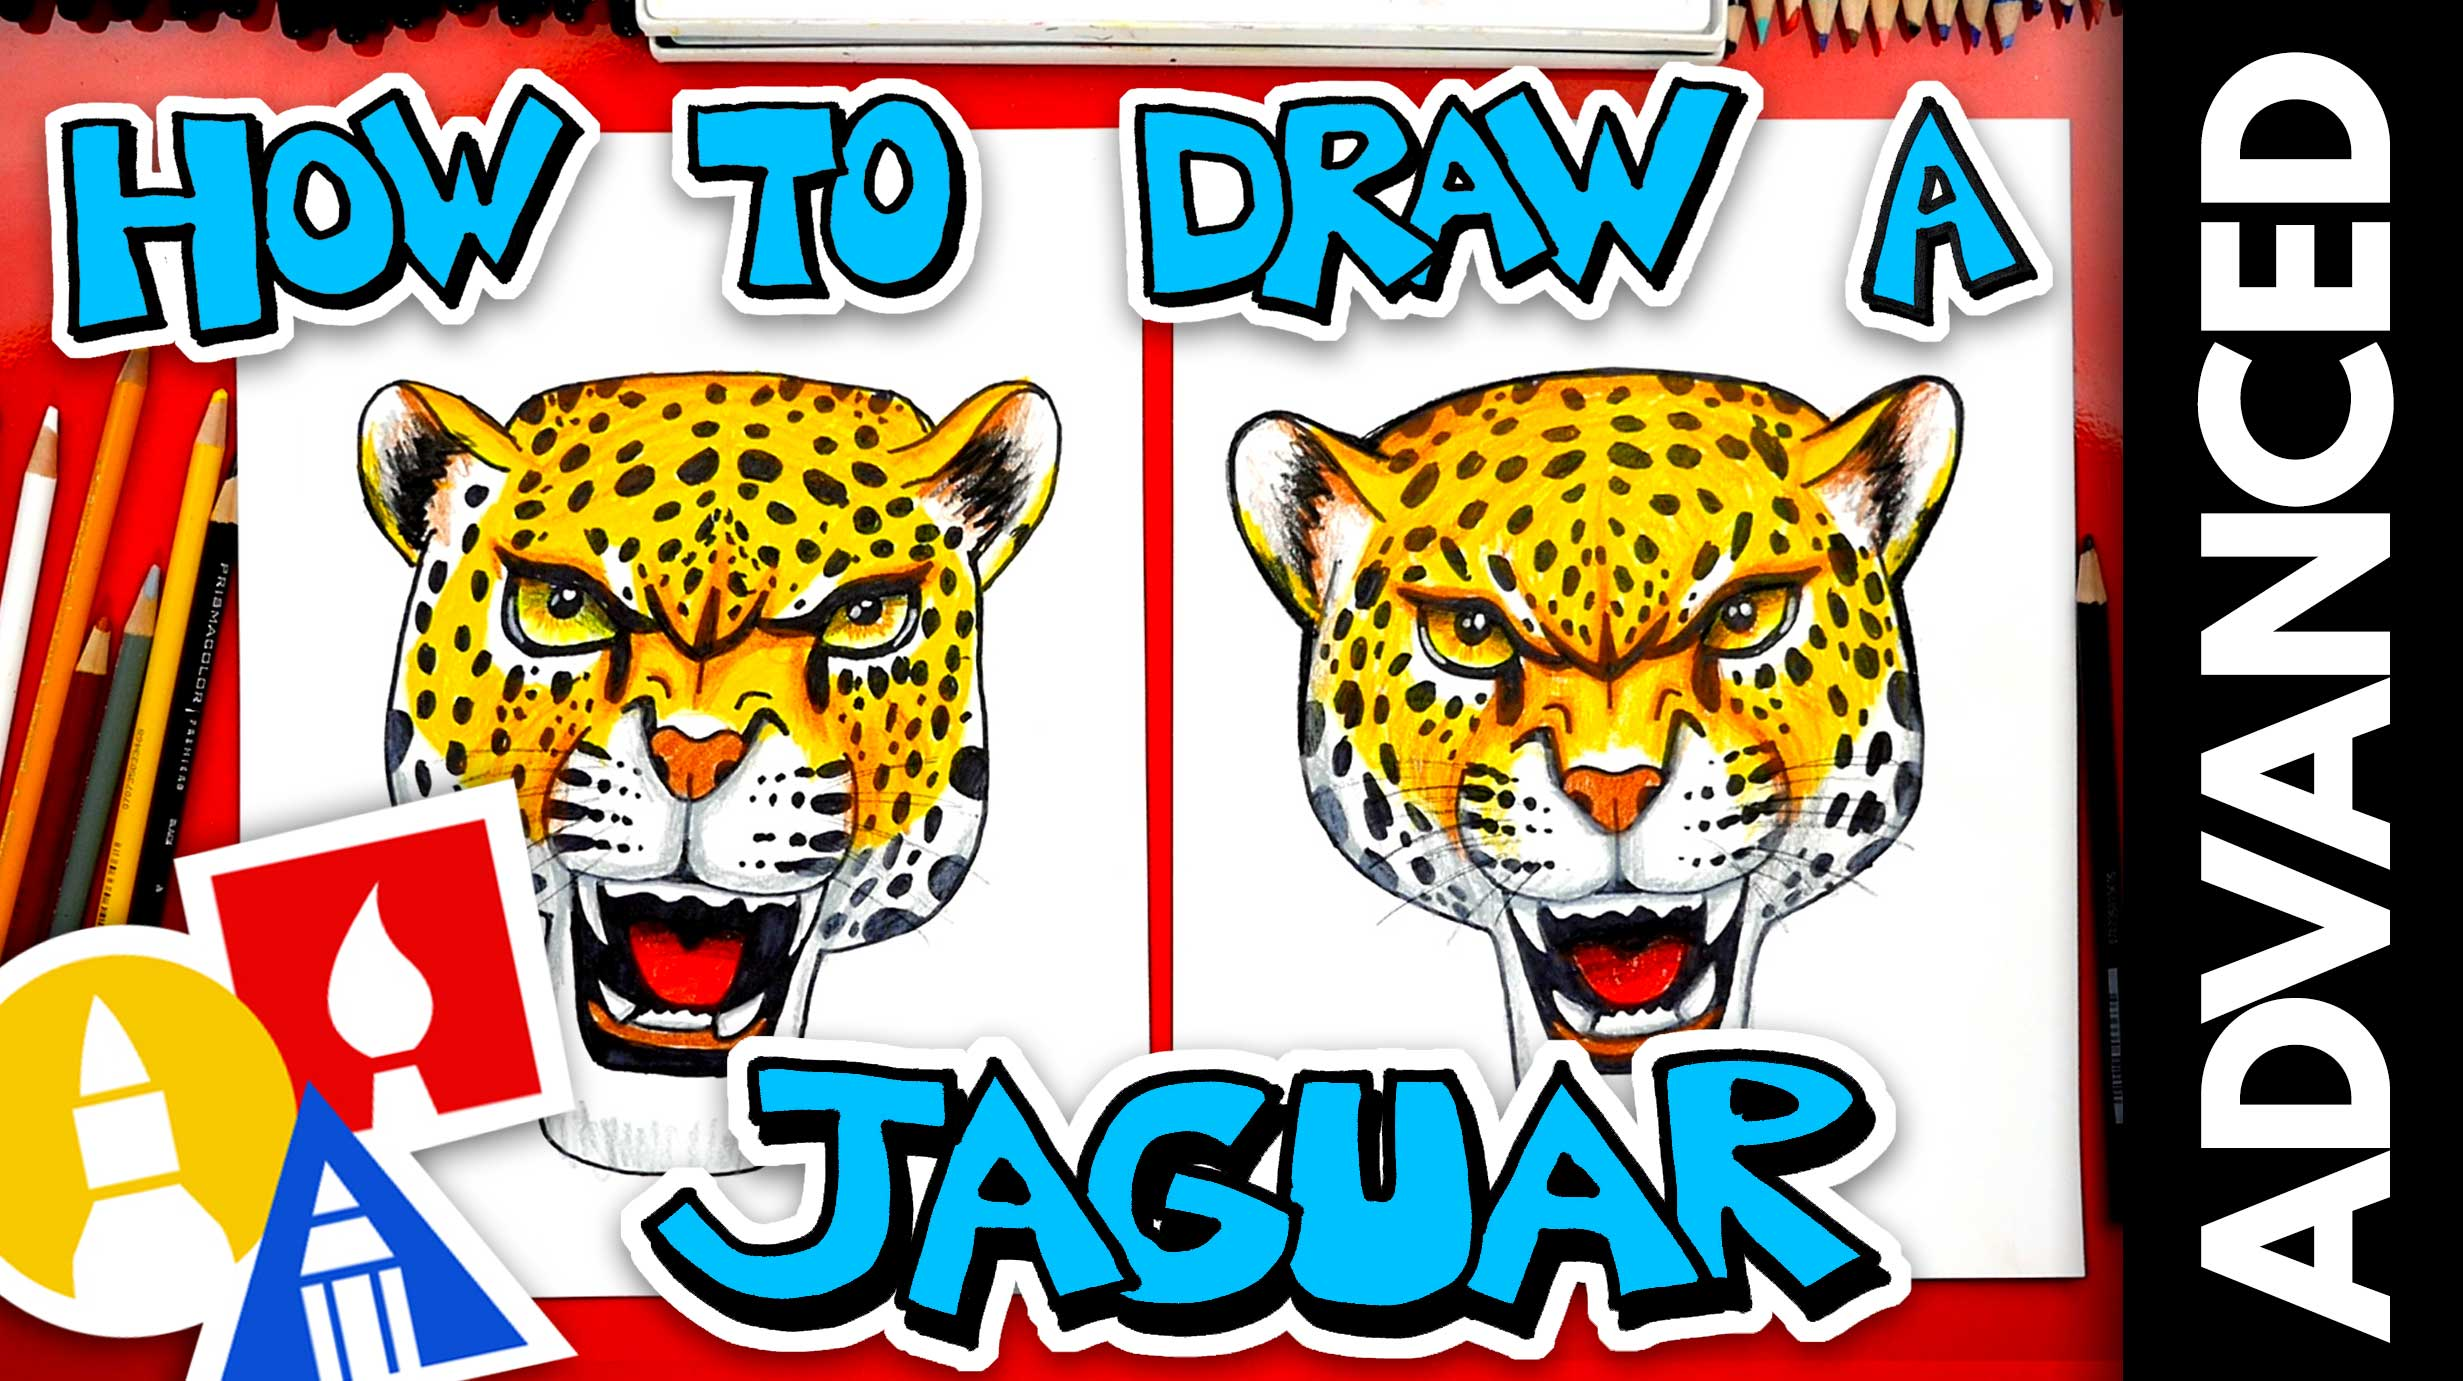 How-To-Draw-A-Realistic-Jaguar-thumbnail.jpg